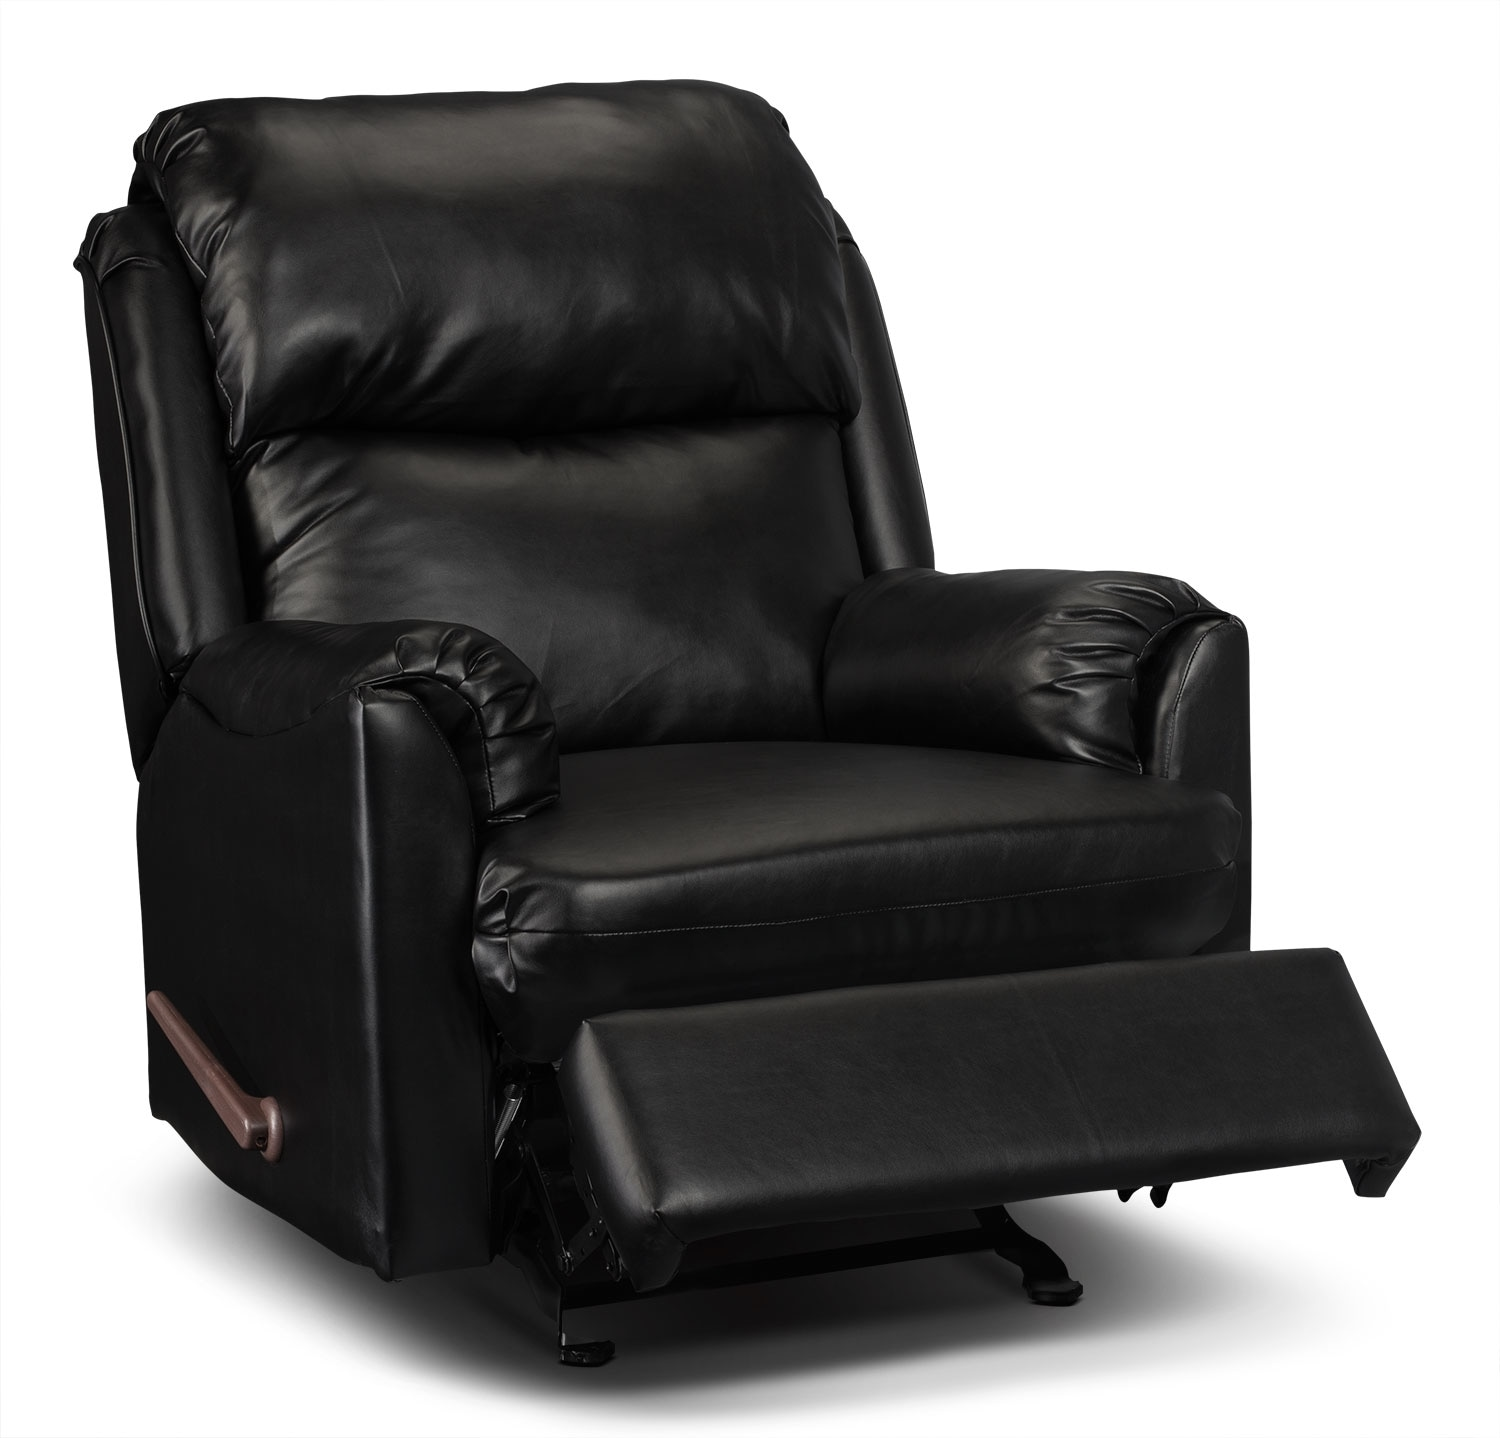 Recliners Made in Canada